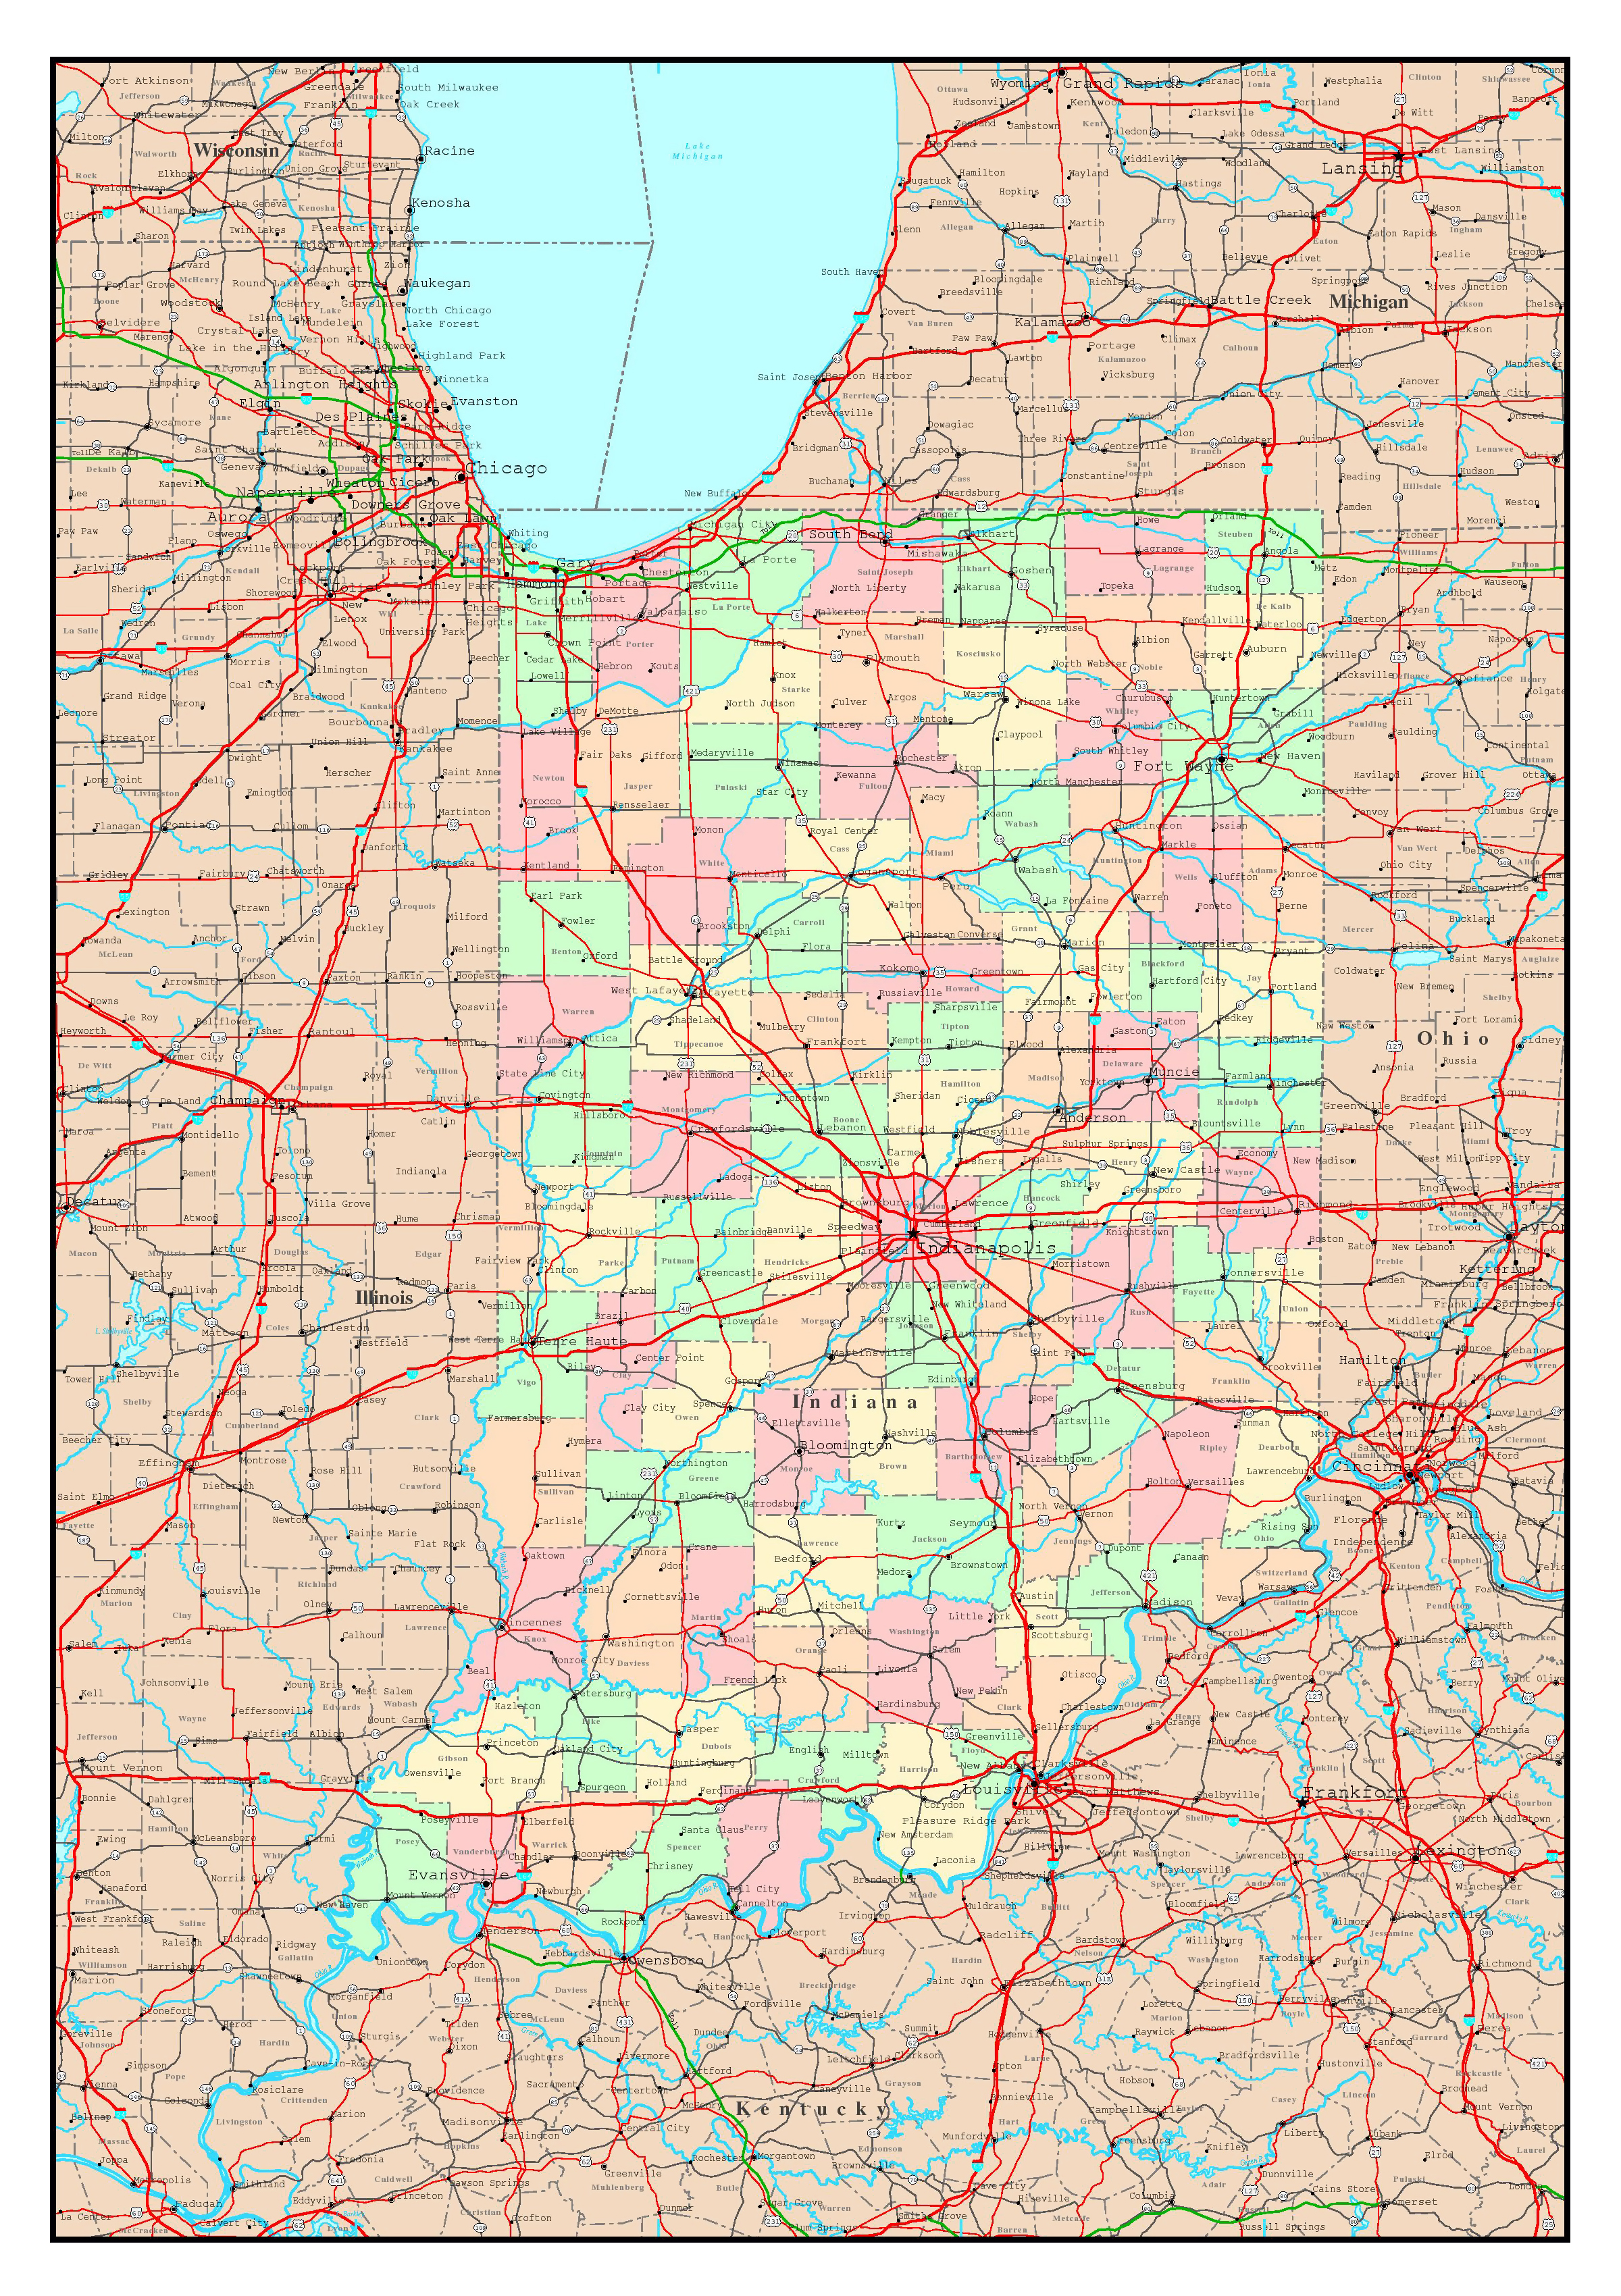 Large Detailed Administrative Map Of Indiana State With Roads - Indiana on map of usa